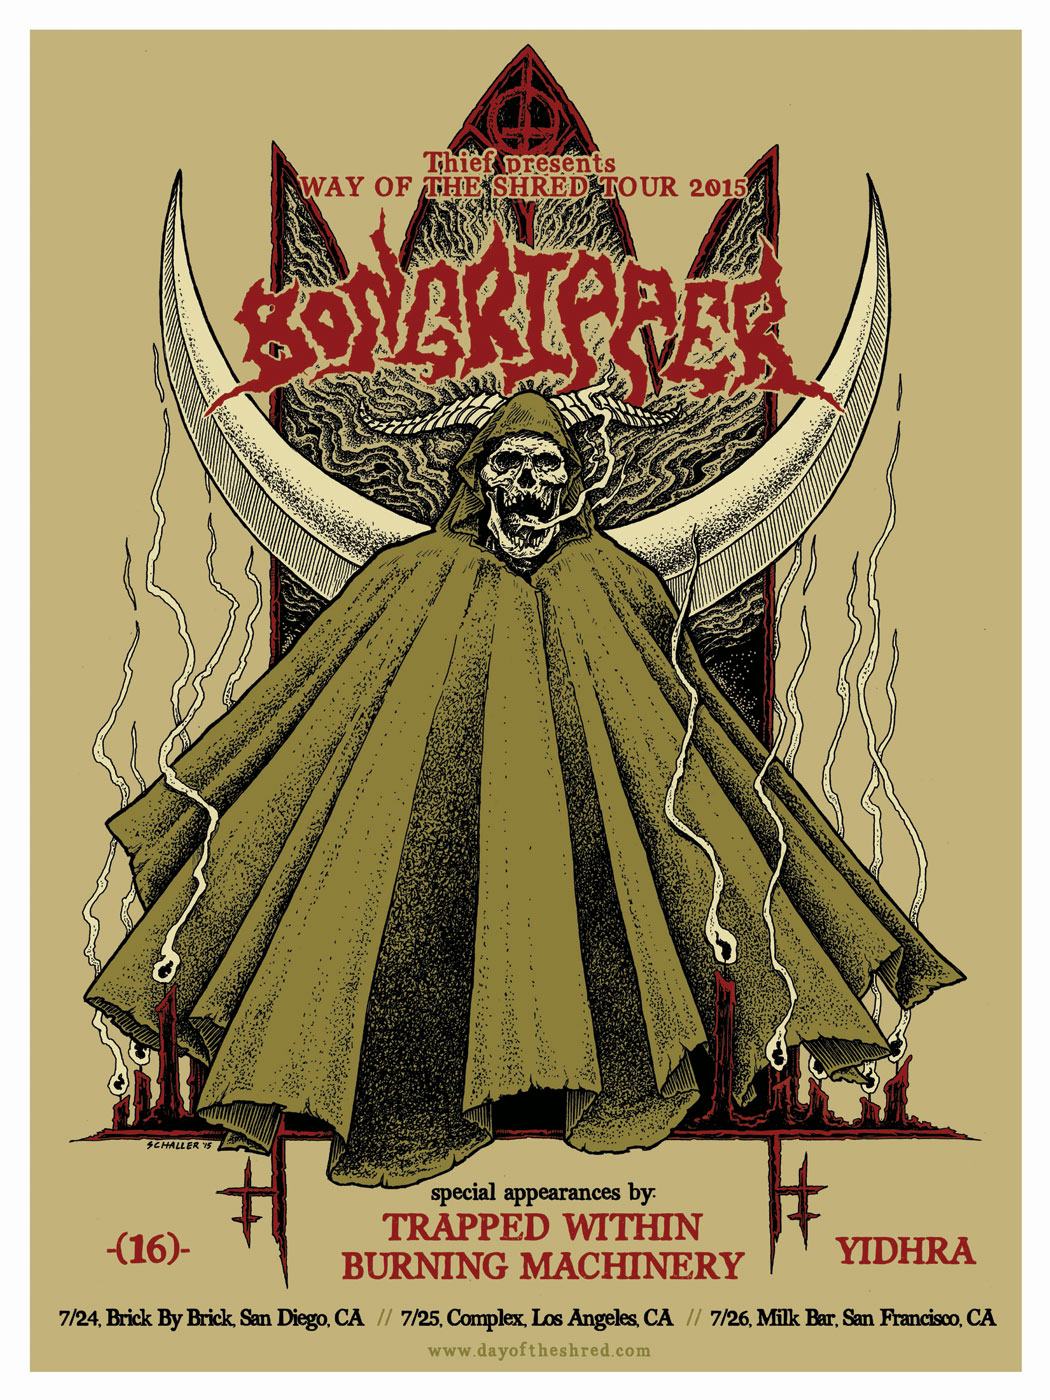 bongripper-way-of-the-shred-tour-poster